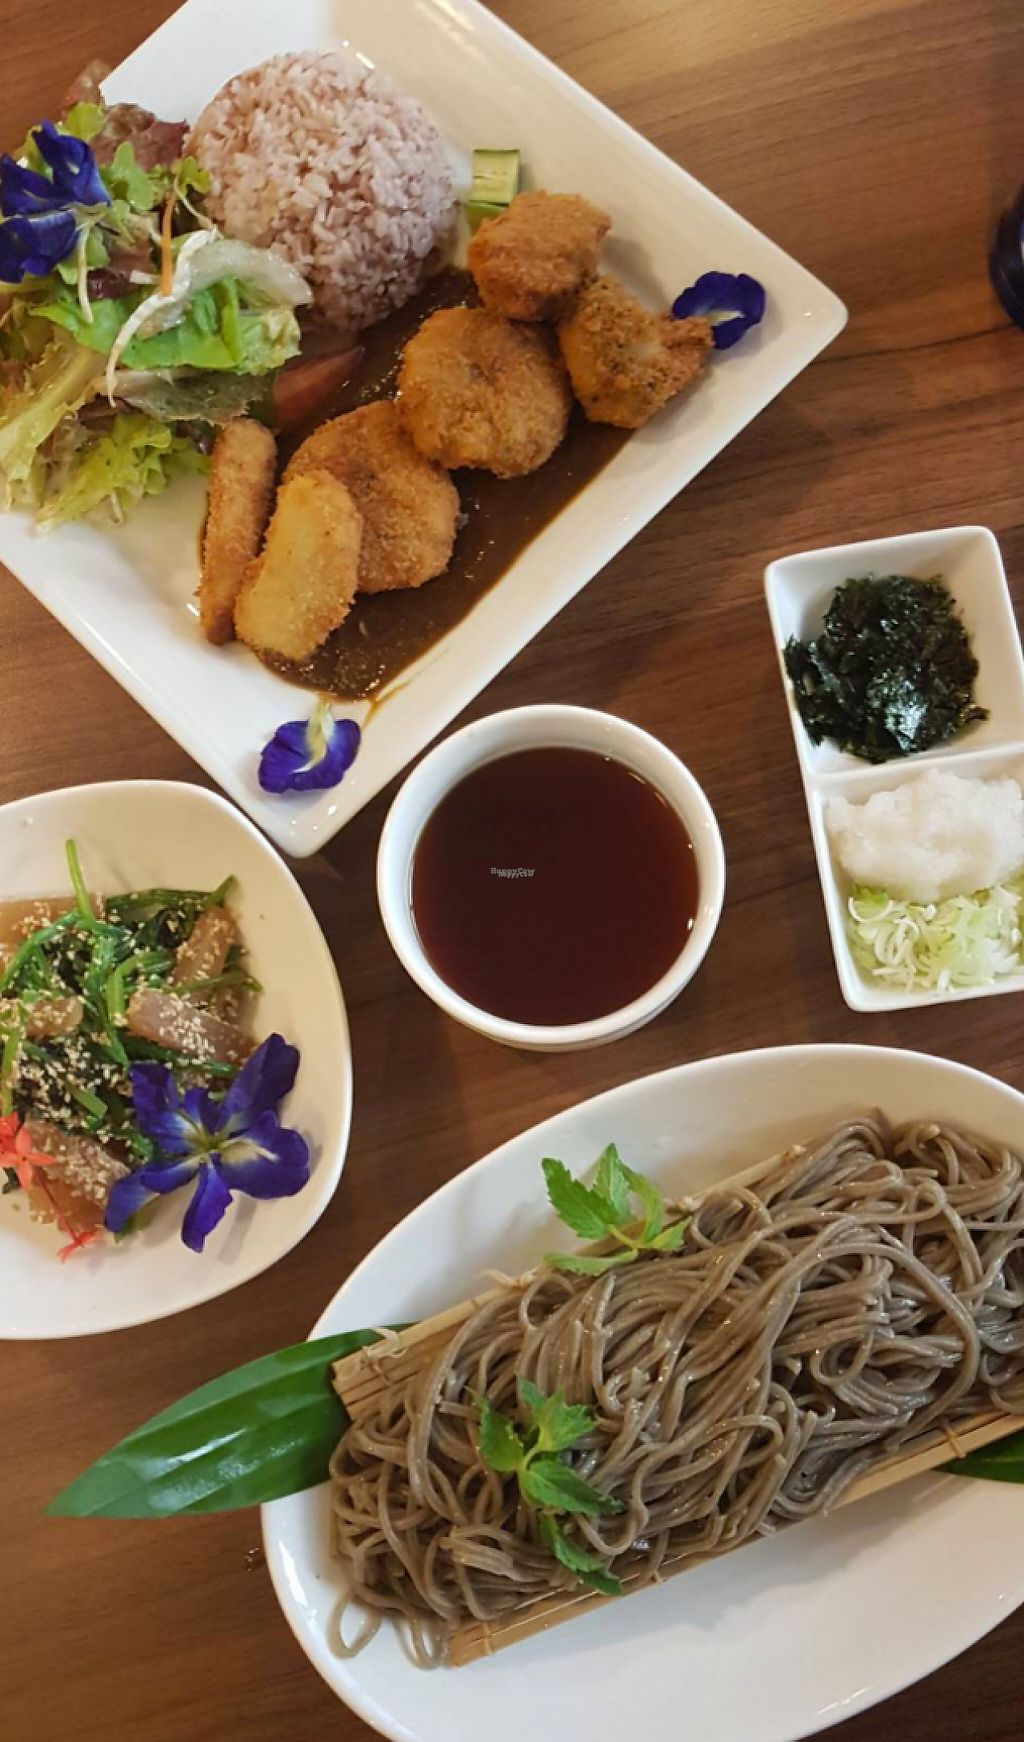 """Photo of Sustaina  by <a href=""""/members/profile/VeganCrush"""">VeganCrush</a> <br/>Soba Noodles with Spinach sesame salad and Curry with fried Veggie Nuggets.  <br/> March 23, 2017  - <a href='/contact/abuse/image/27429/239896'>Report</a>"""